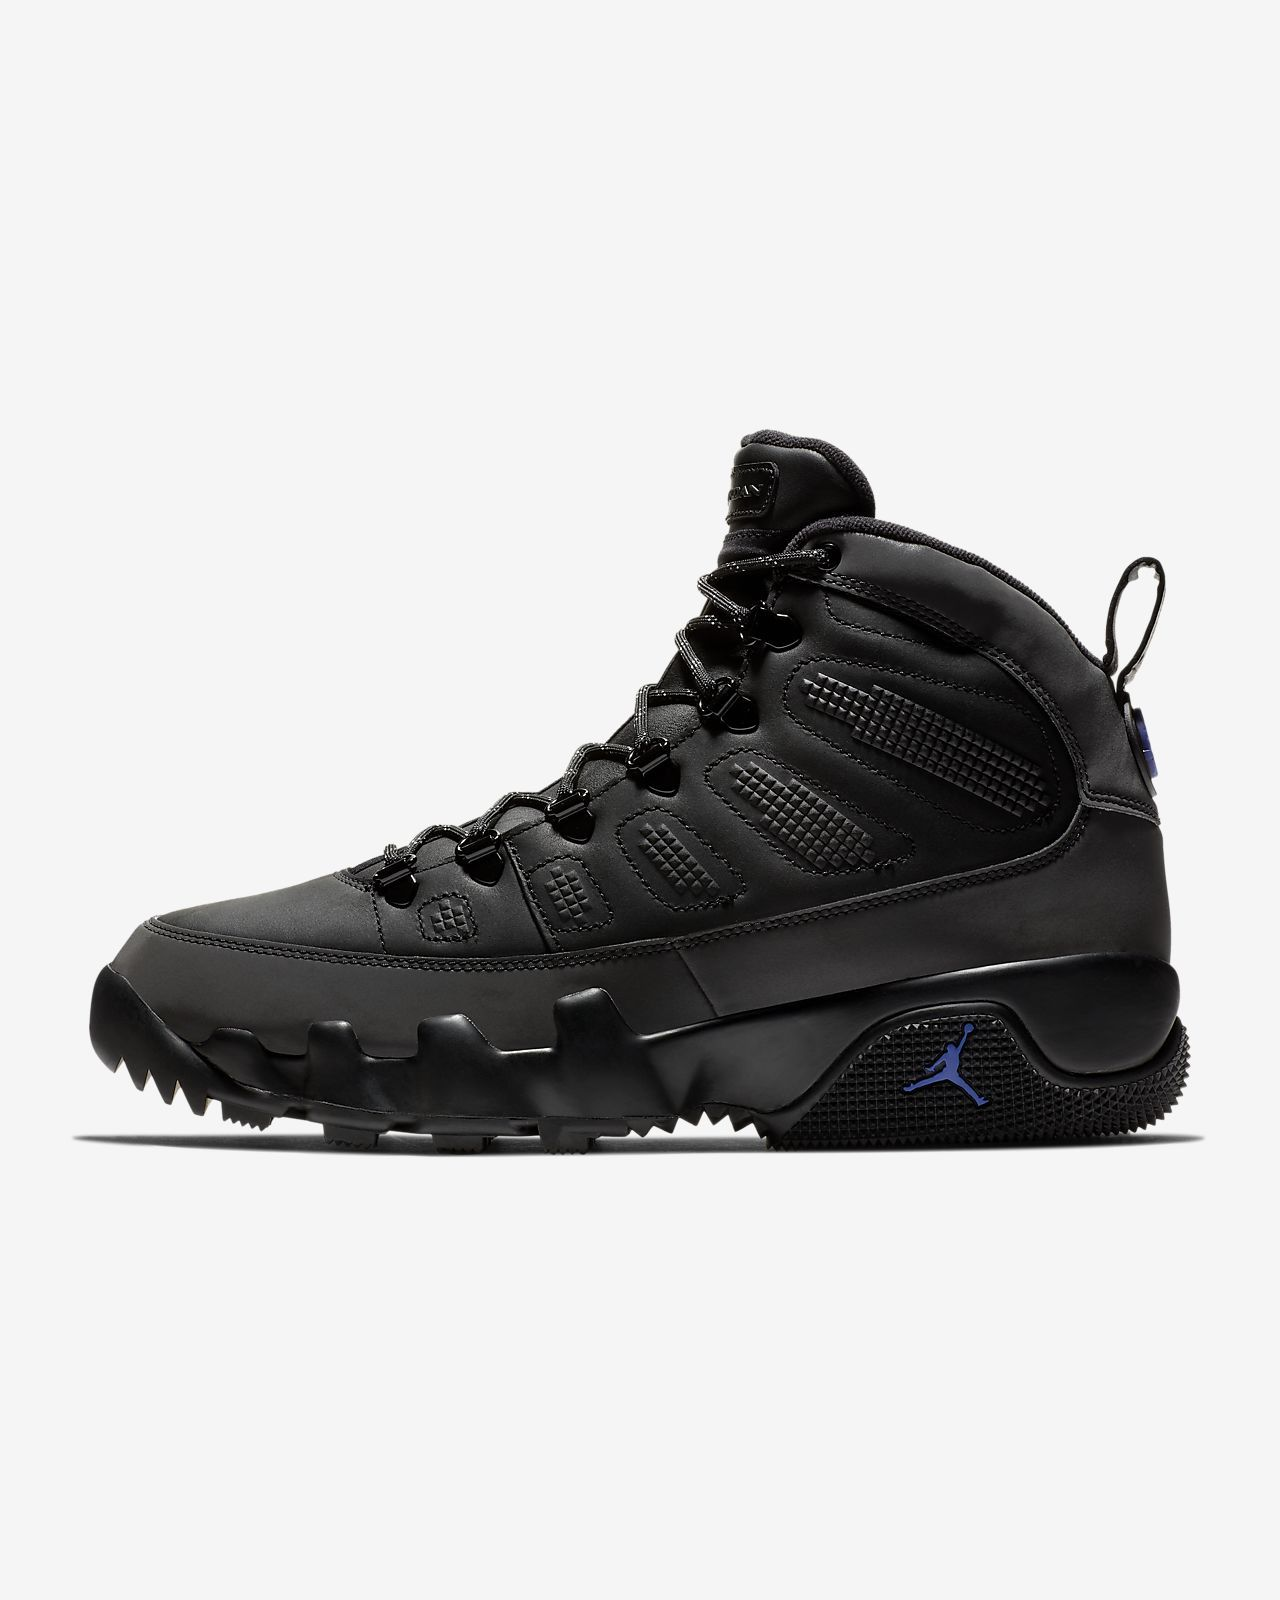 b645d0bba2c379 Nike Men s Boot Air Jordan 9 Retro NRG in 2019